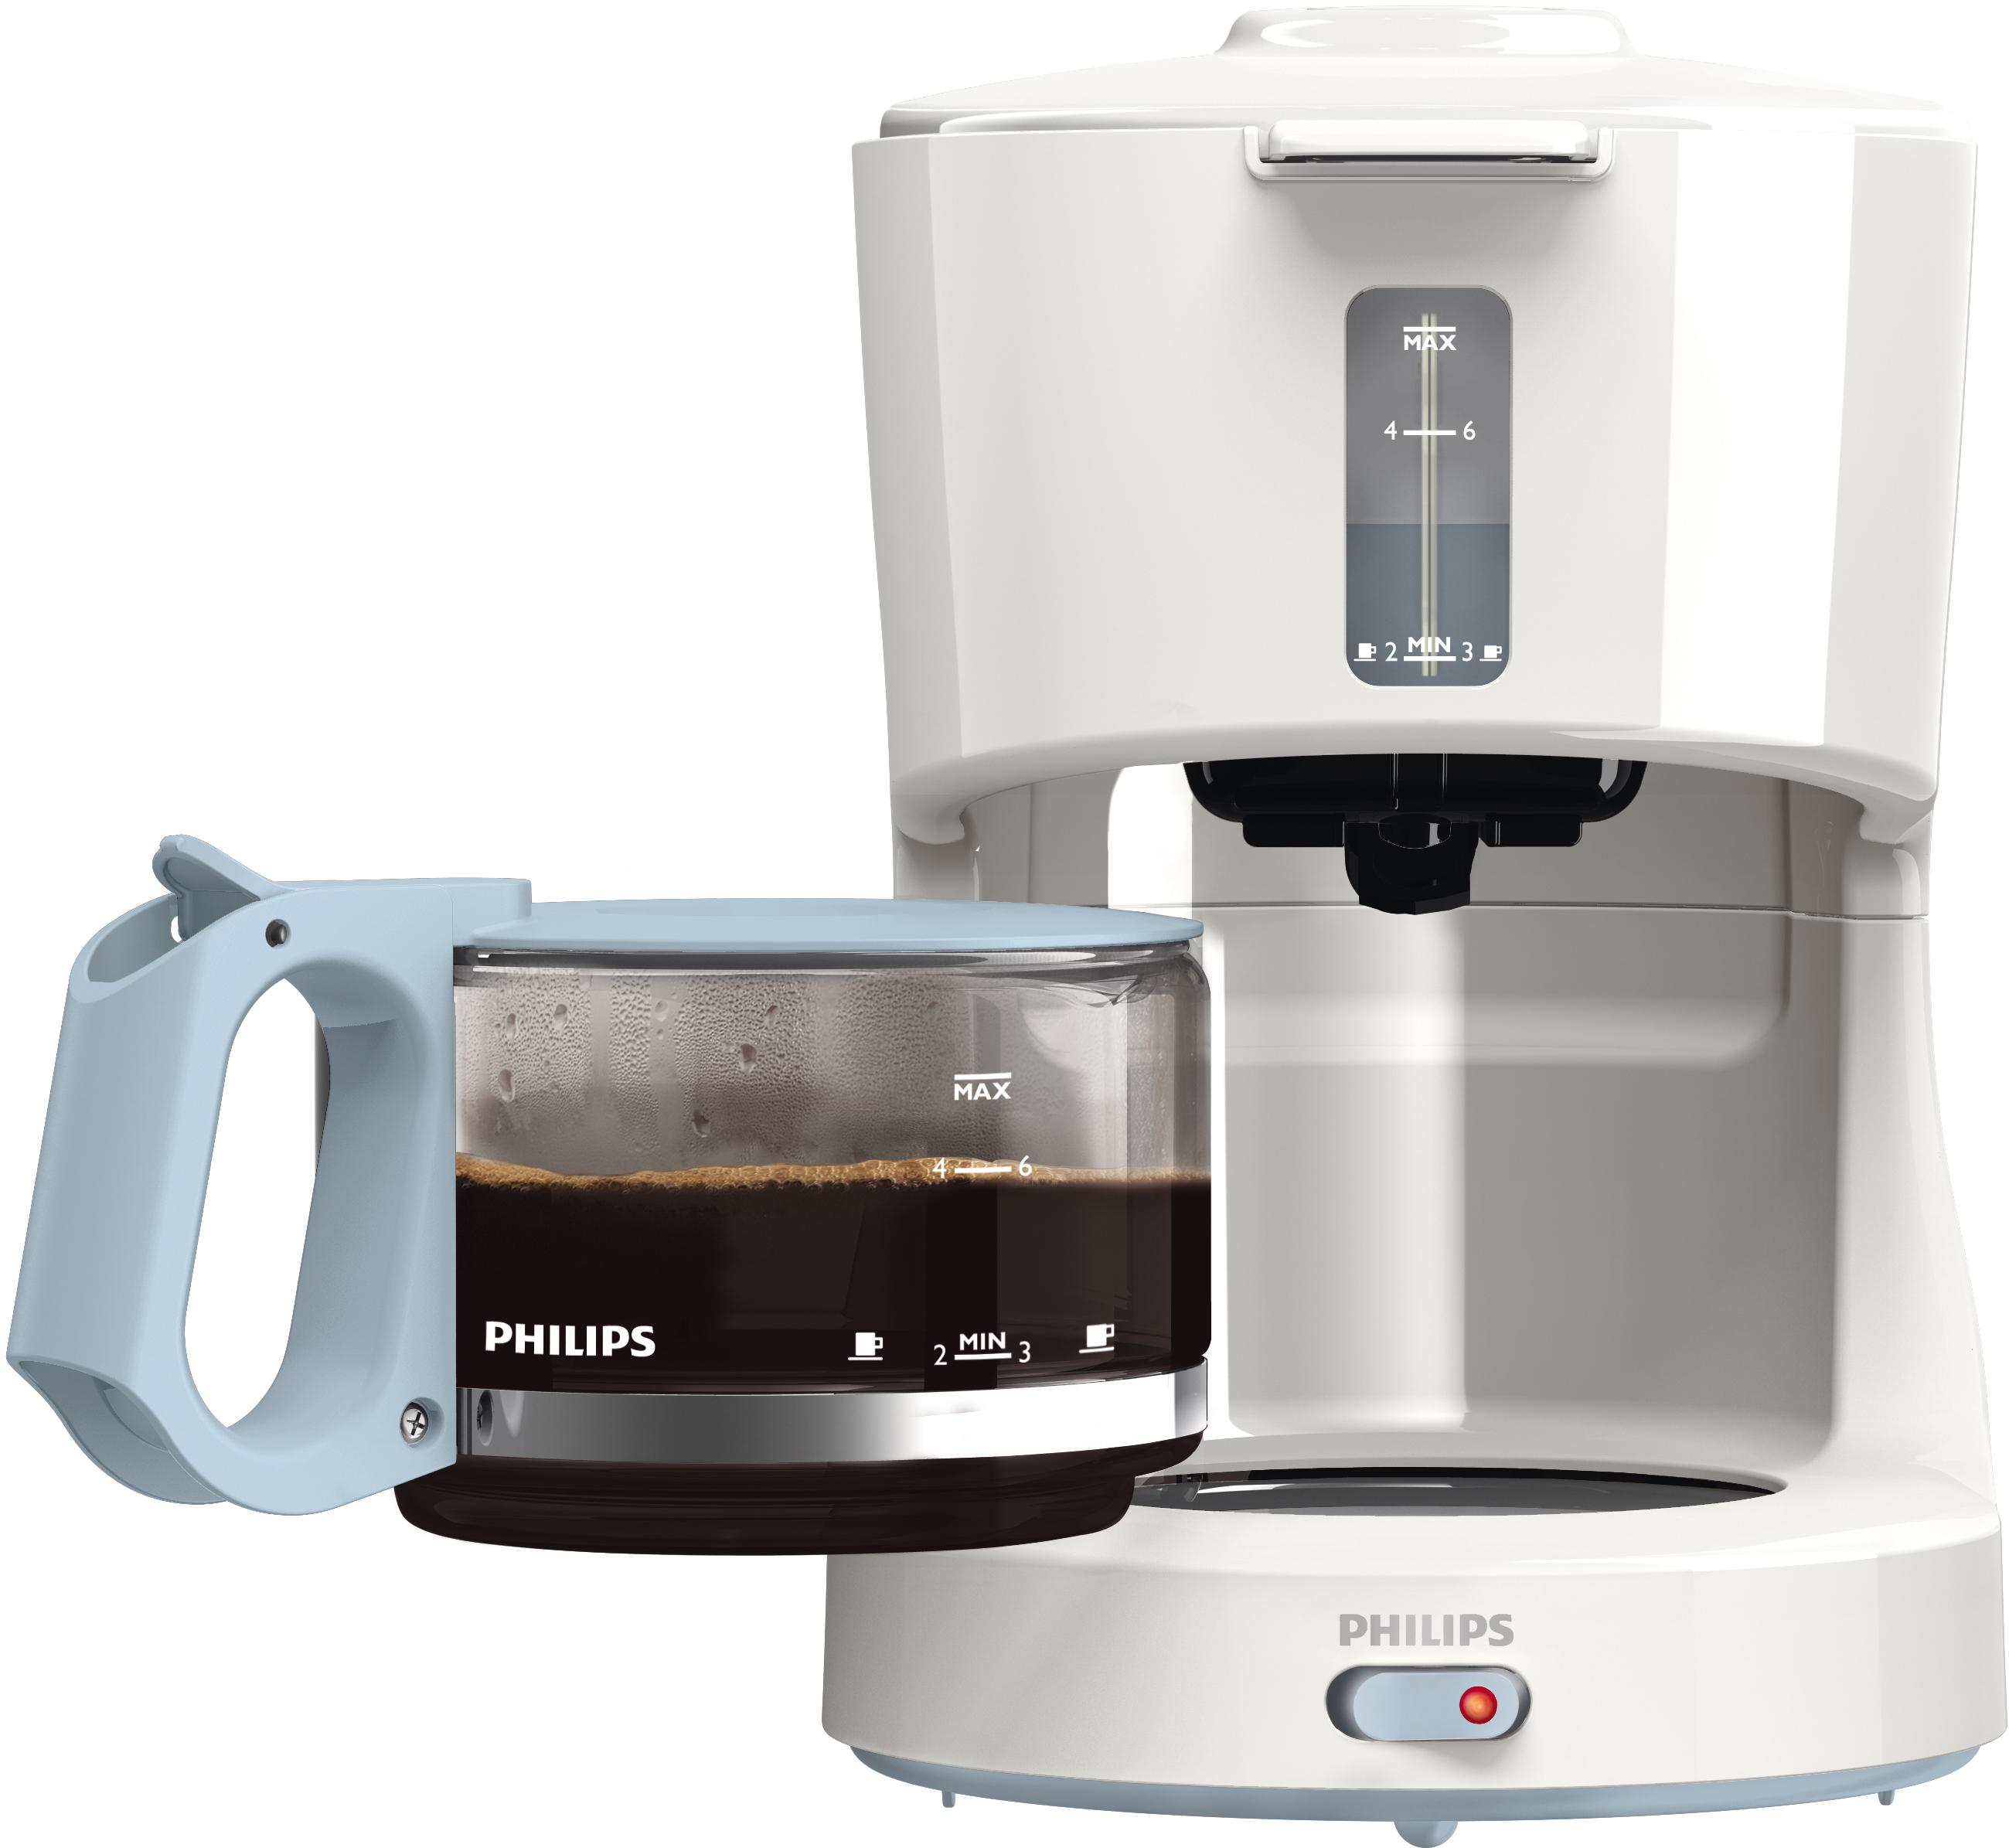 Philips HD7447 220 Volt 10-Cup Coffee Maker 220V-240V For Export Overseas Use